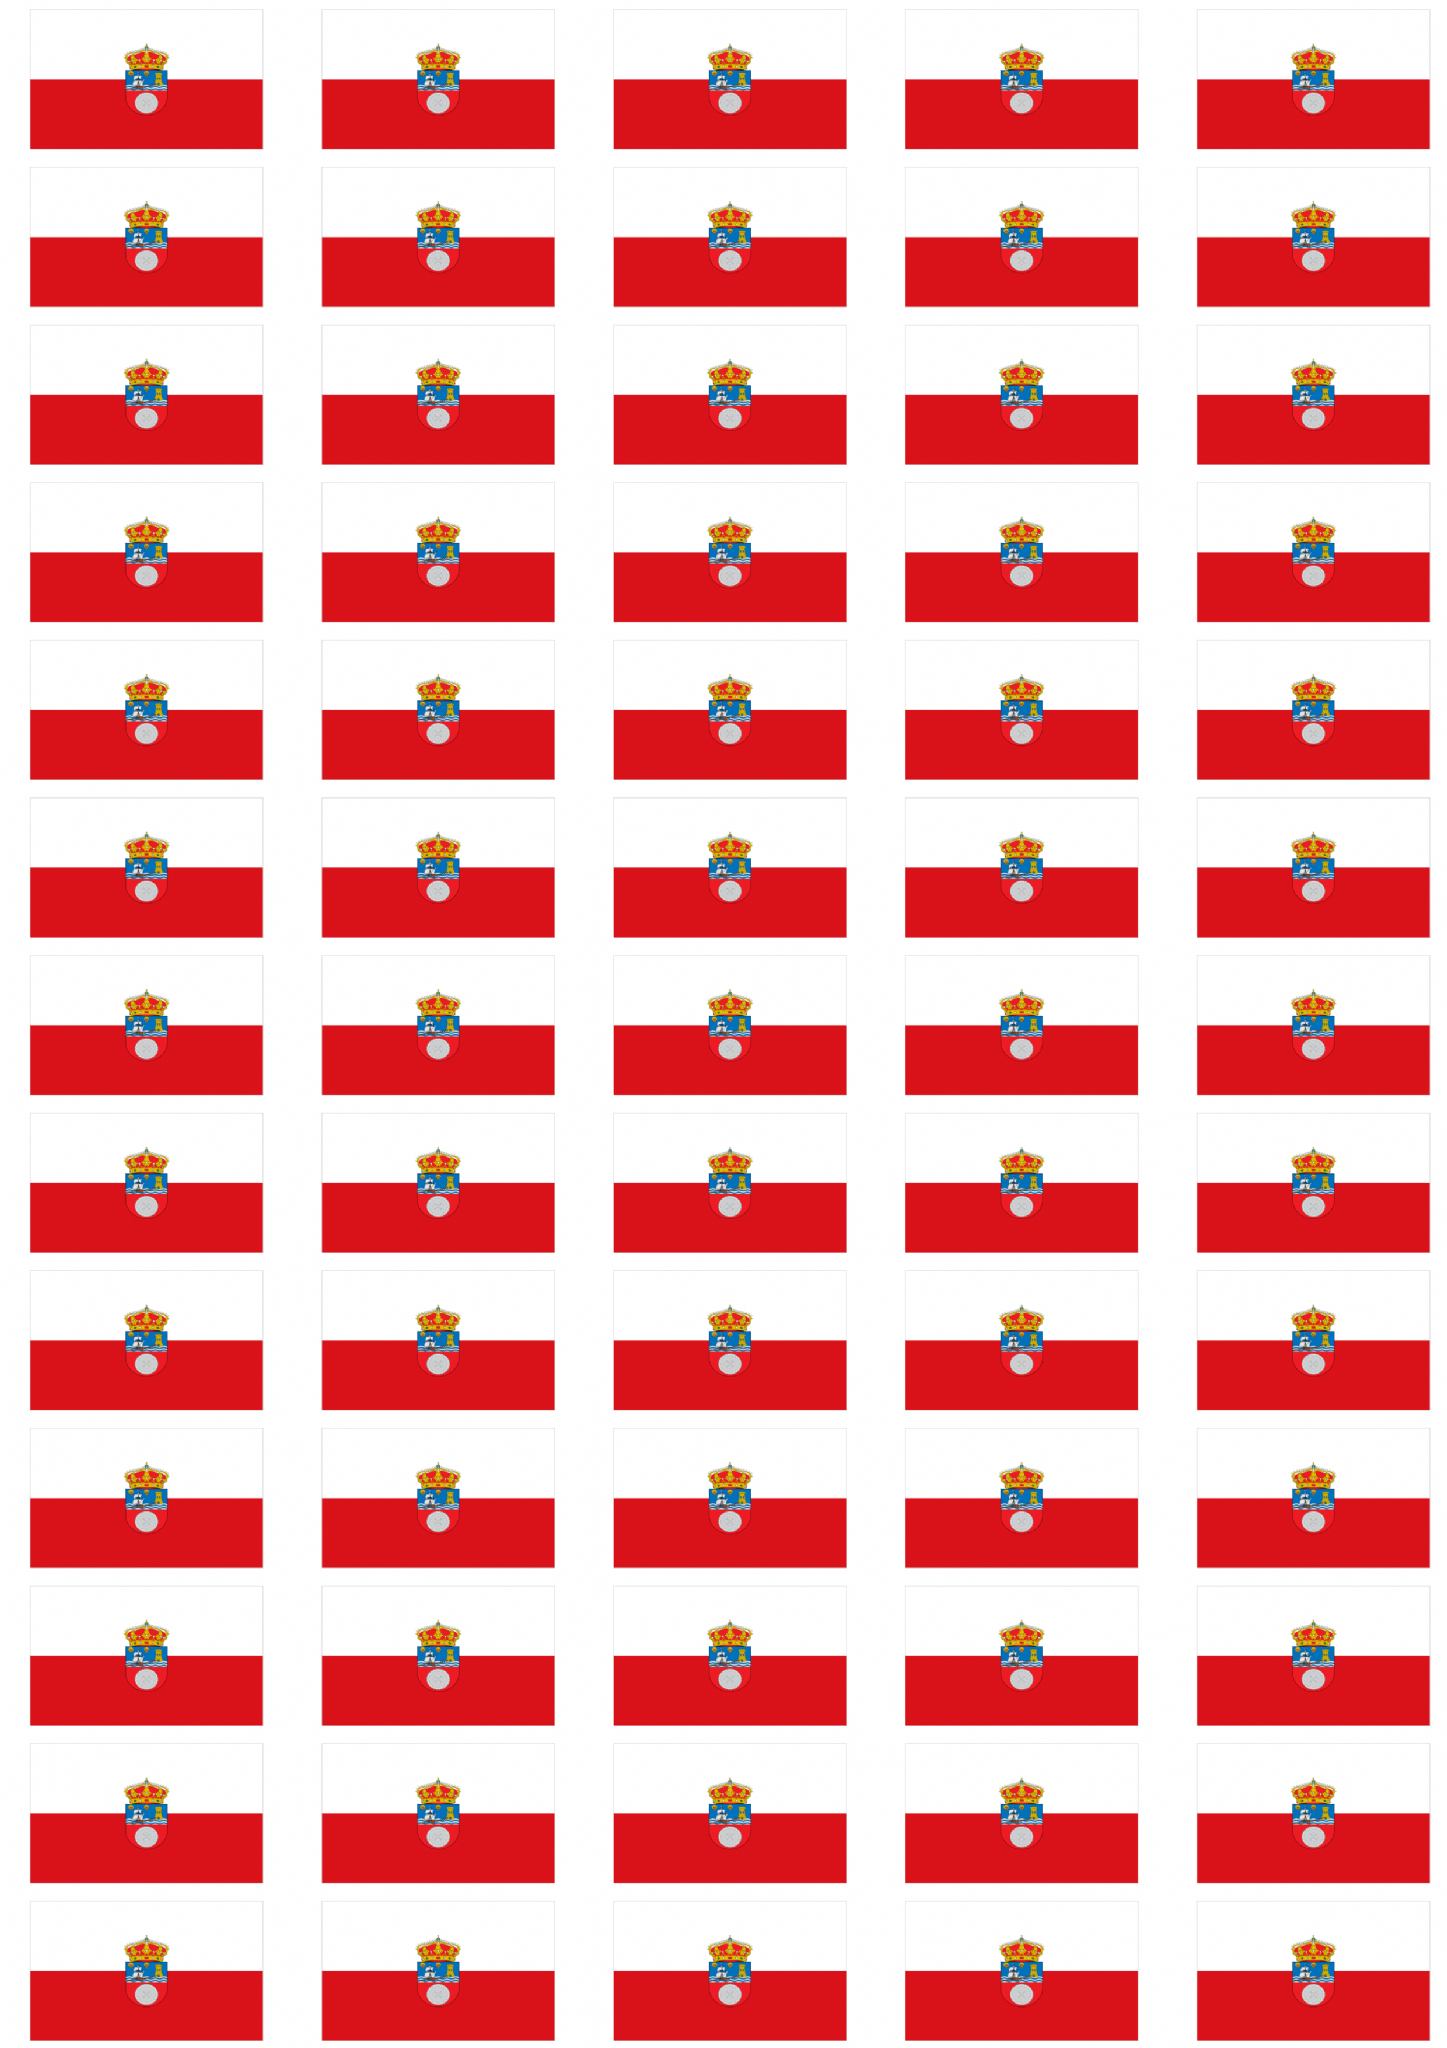 Cantabria flag stickers 65 per sheet